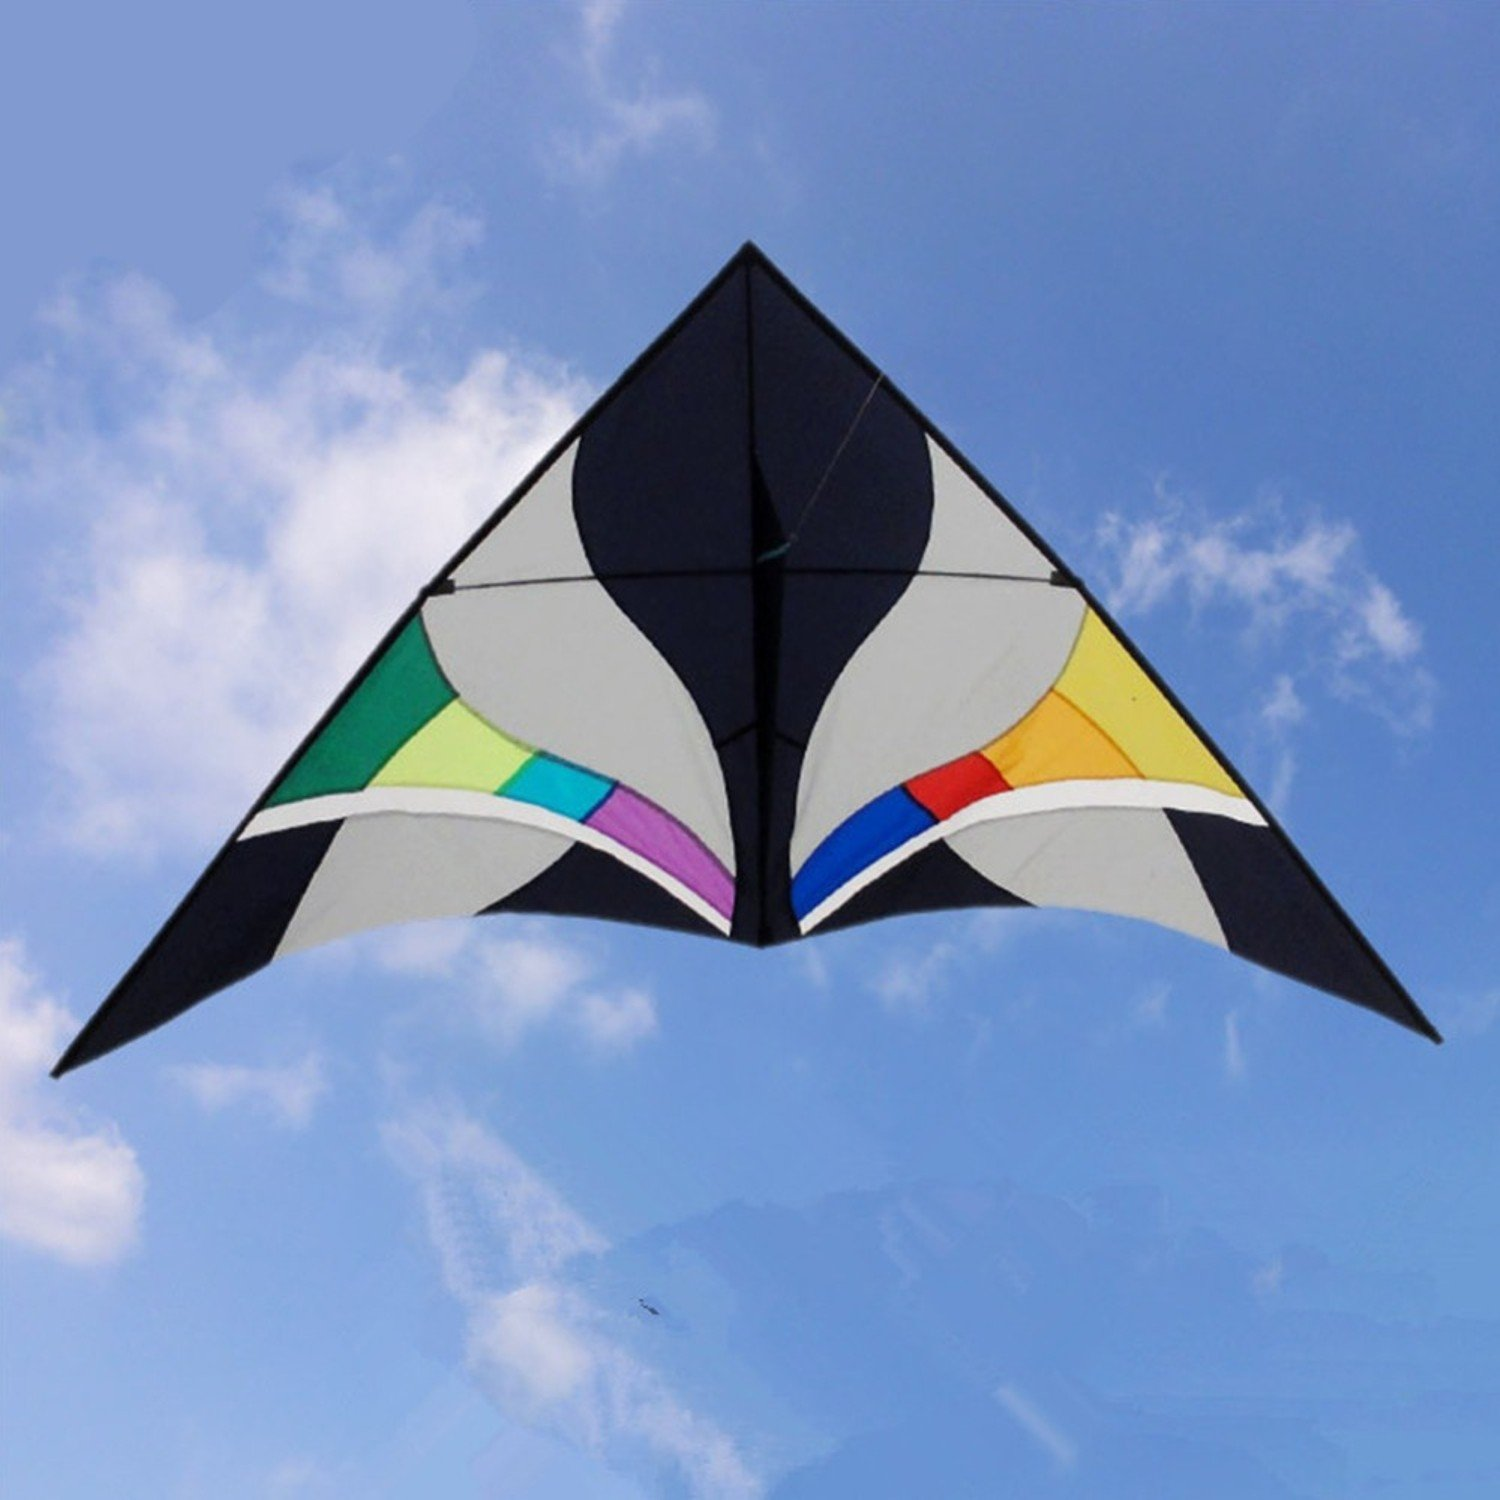 Sky Delta Kite Single Line Outdoor Toy Beautiful With Rainbow Color Very Easy To Fly It, You Will Be Happy It. by Kites